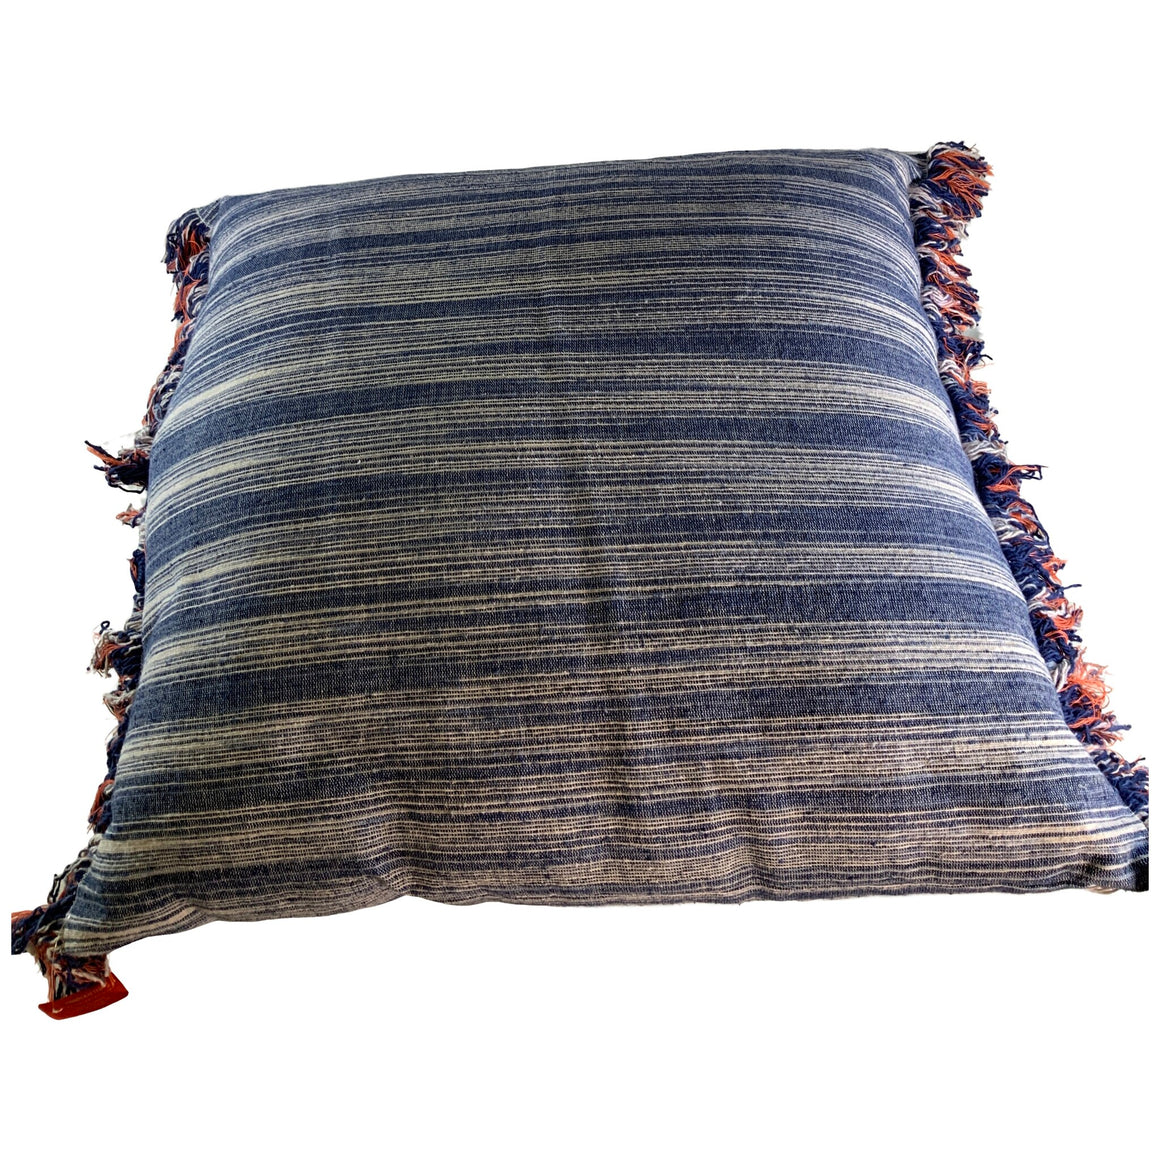 Euro Texture Stripe Decorative Throw Pillow Indigo - Opalhouse™